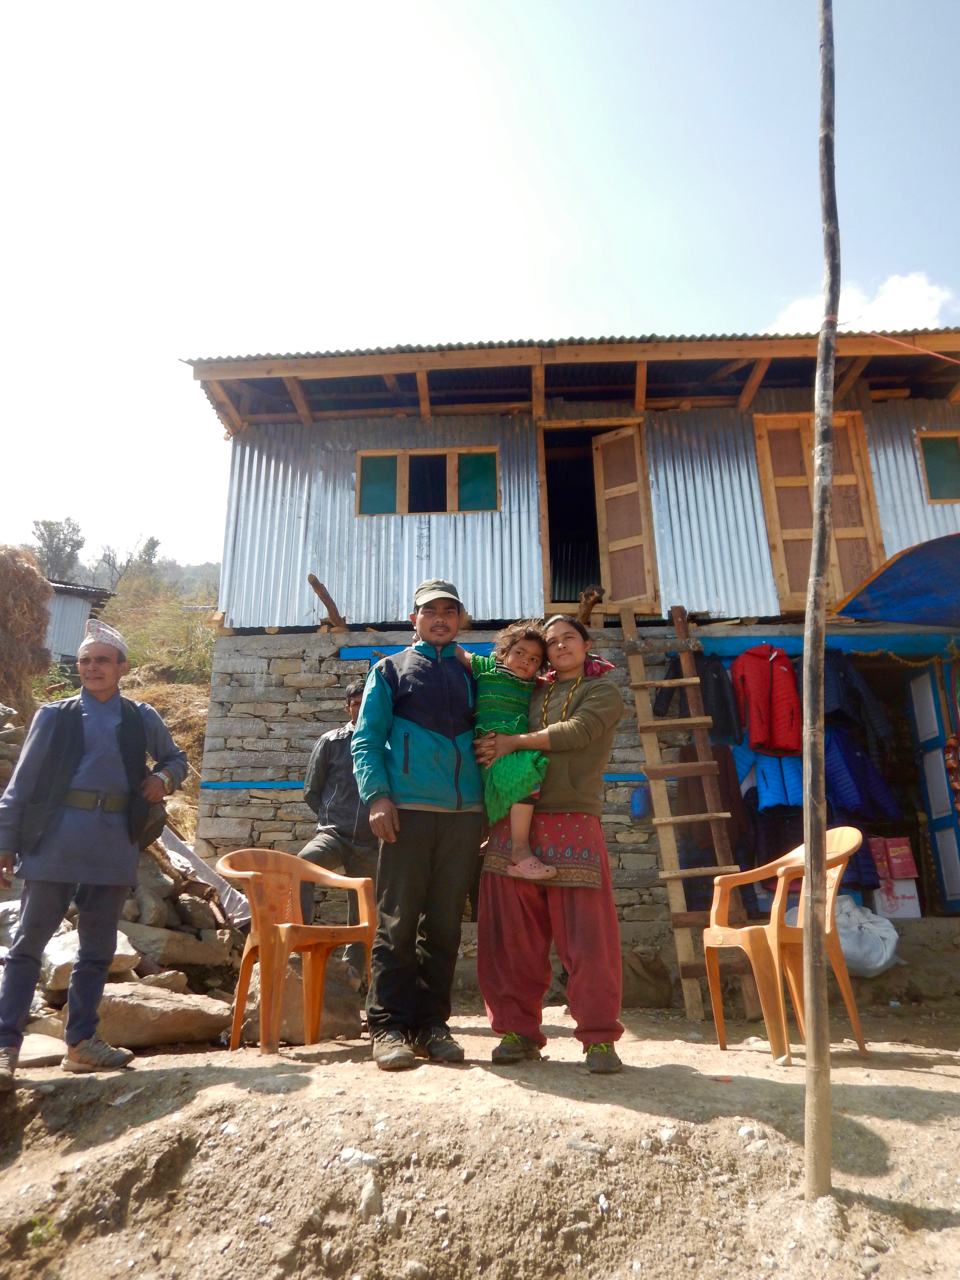 Family in front of house with 2 shops.